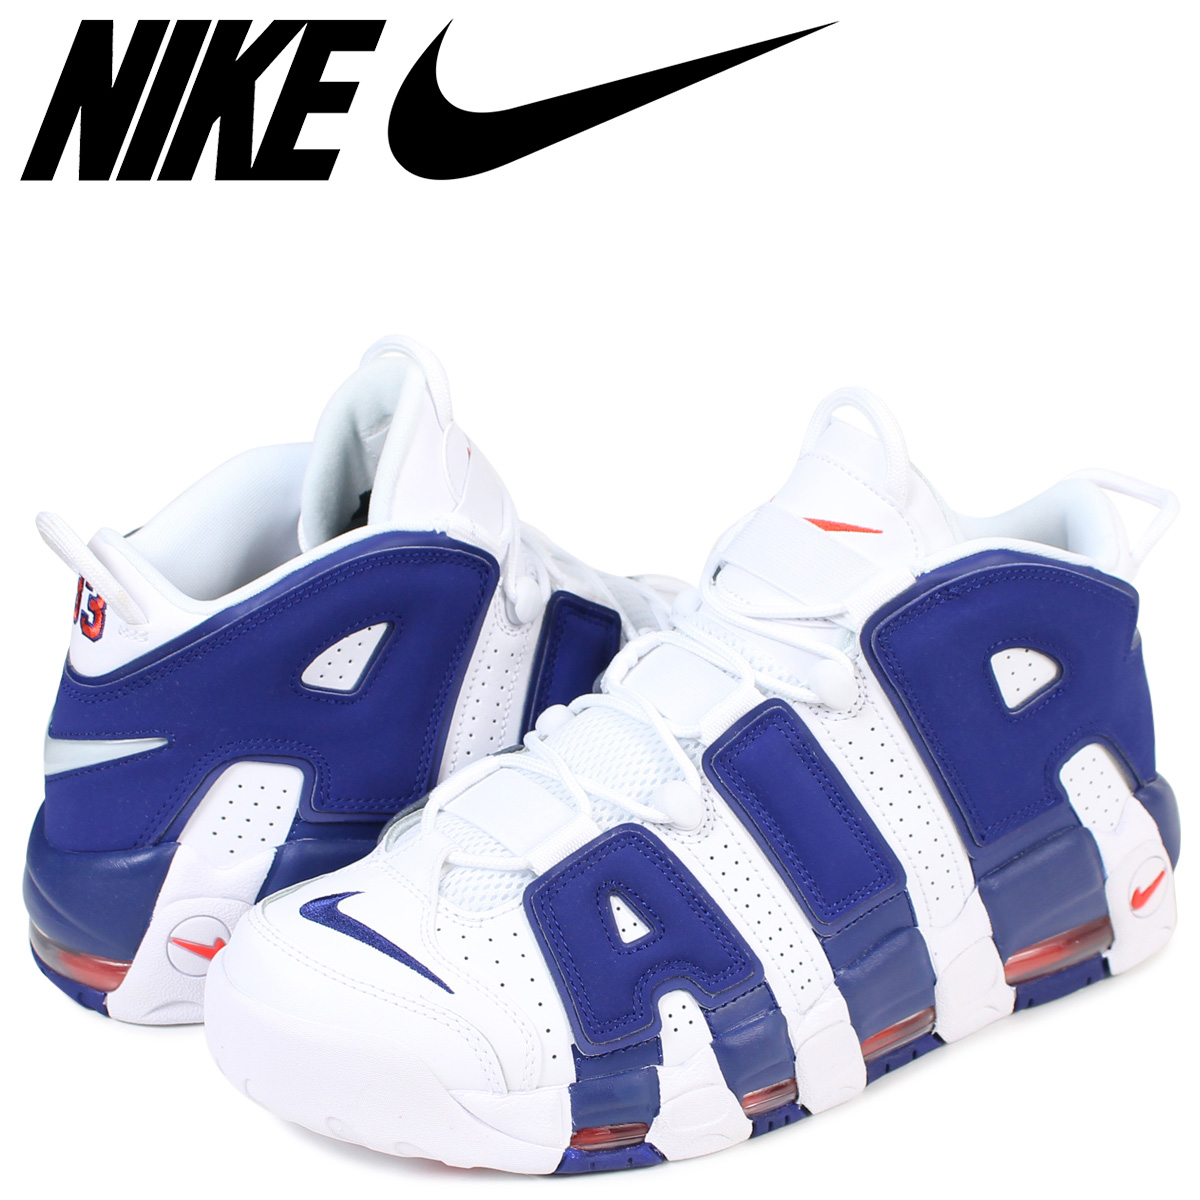 c0cafea1ad NIKE Nike air more up tempo sneakers AIR MORE UPTEMPO 96 KNICKS 921,948-101  men's ...